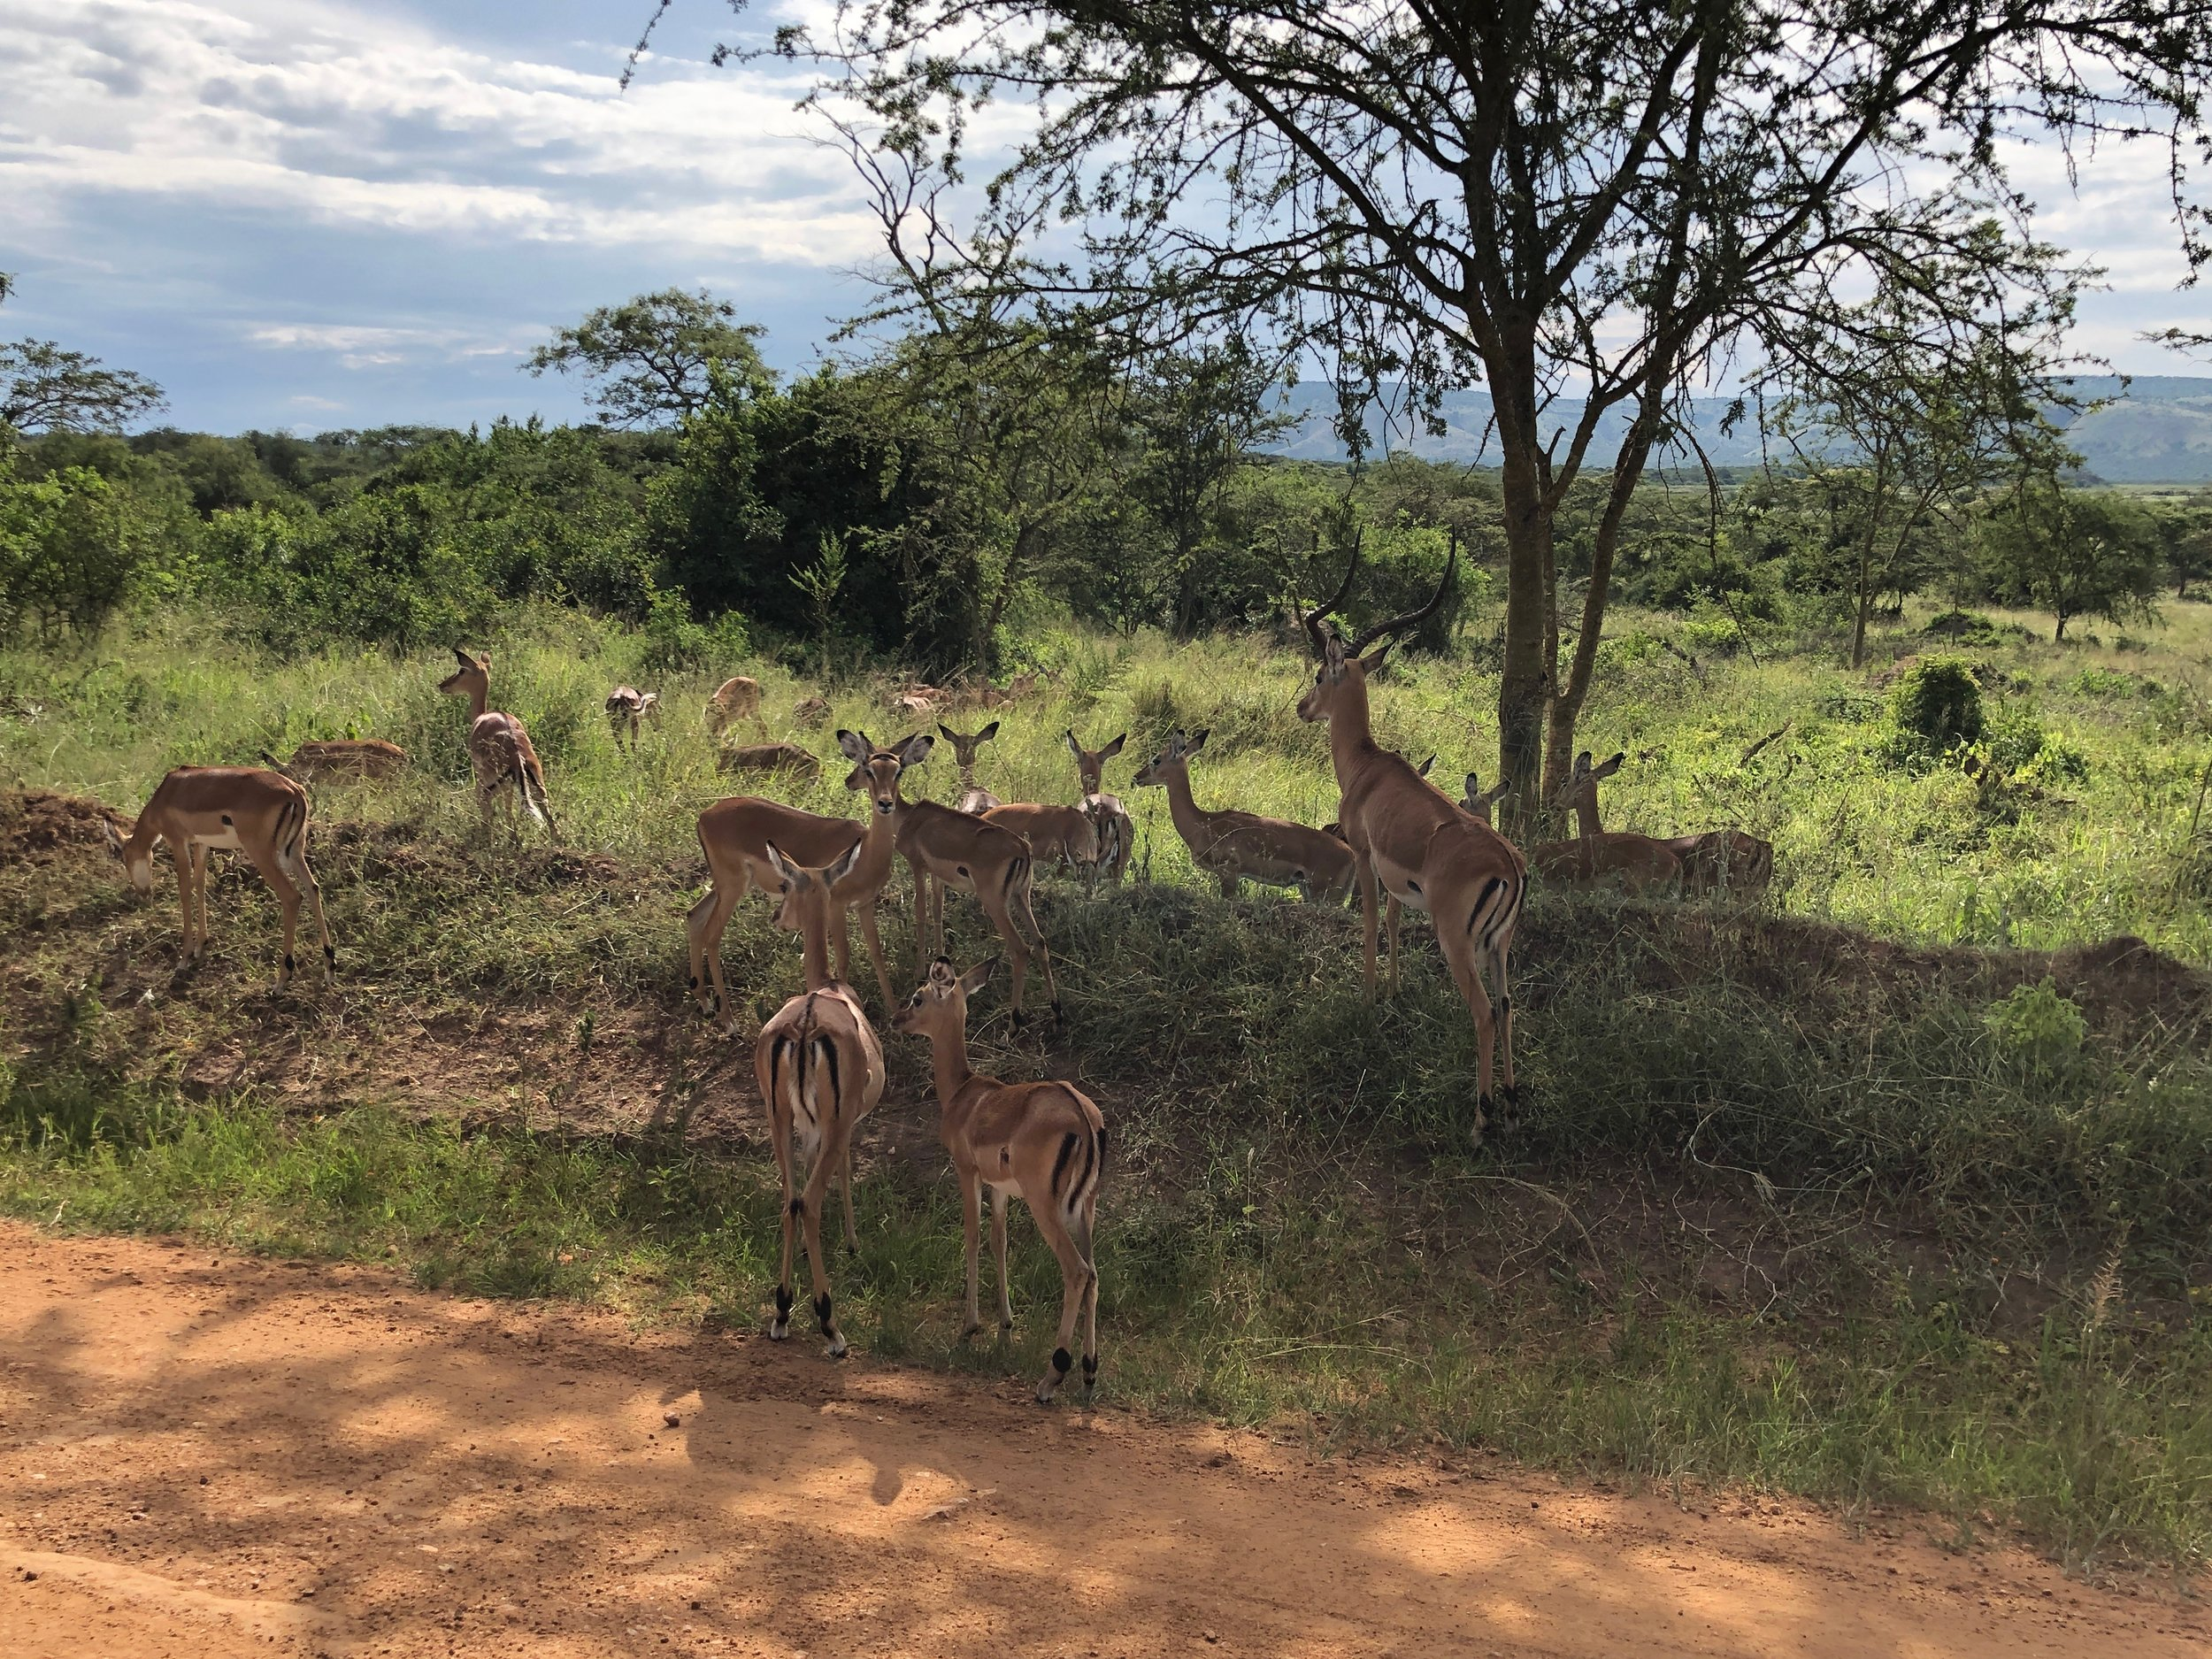 A herd of impala chilling in the shade on the side of the road.